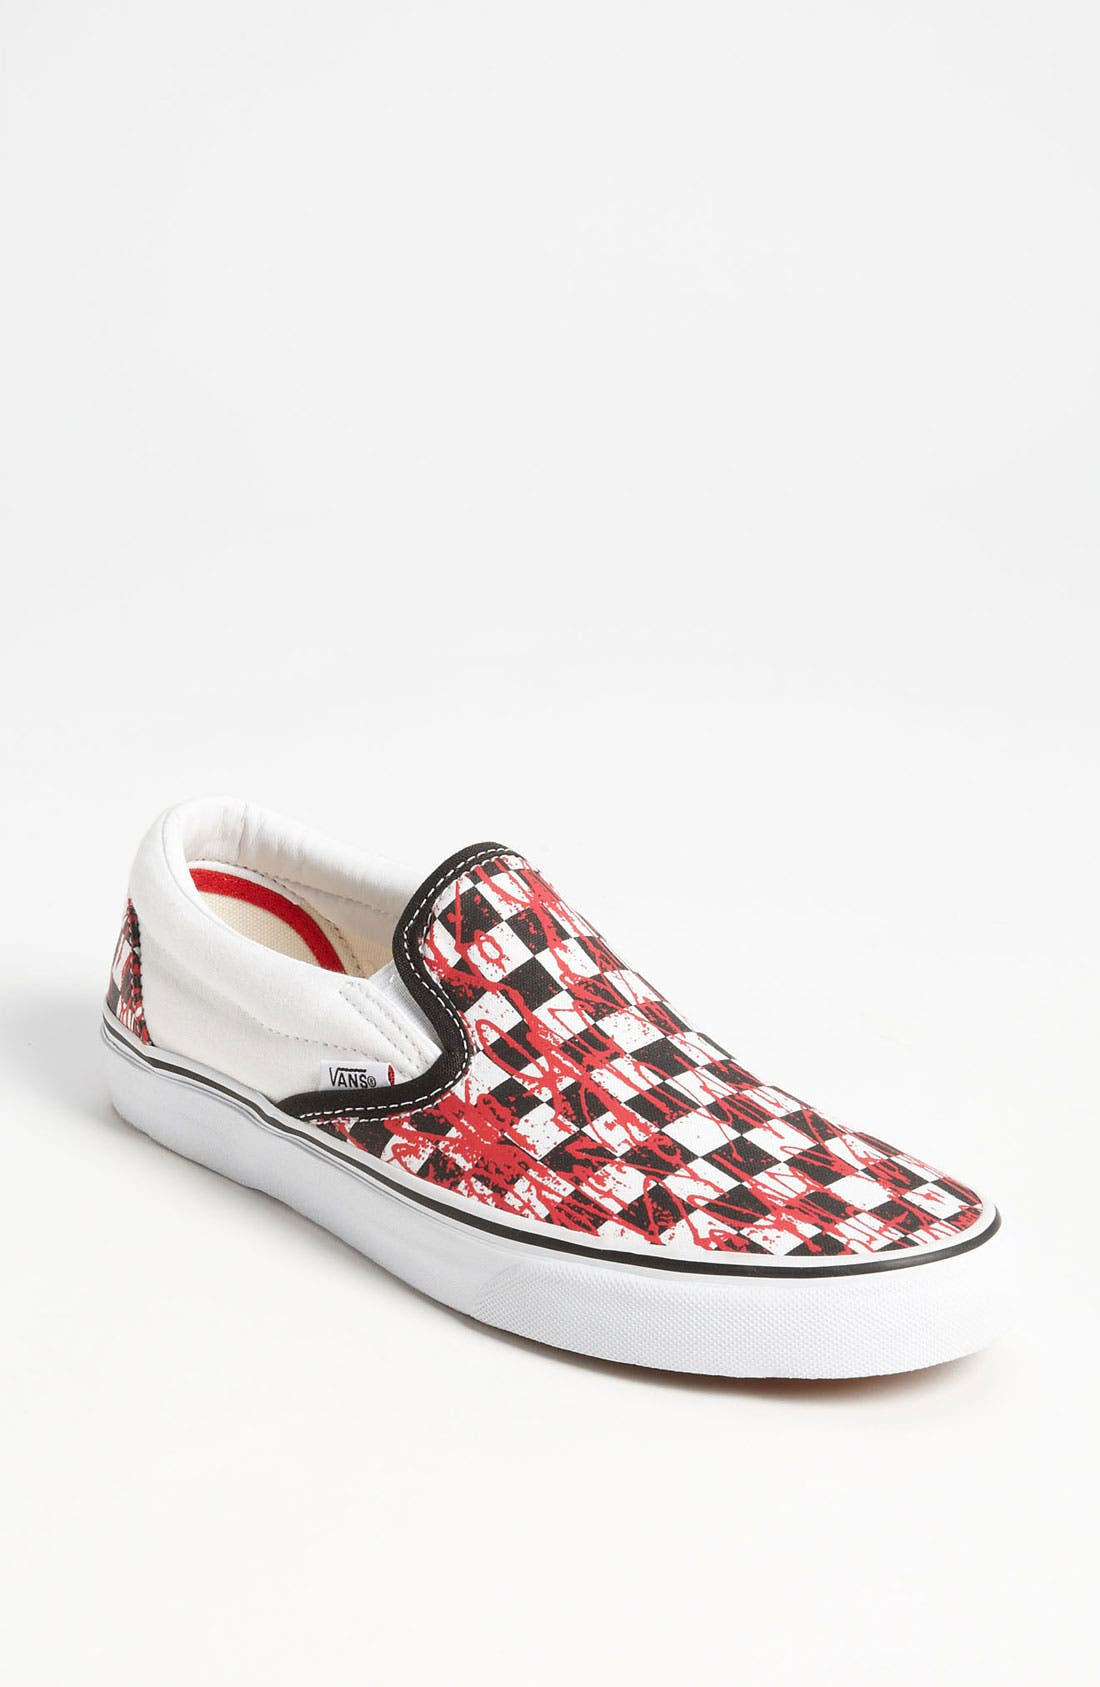 Alternate Image 1 Selected - Vans 'Love Me' Sneaker (Women)